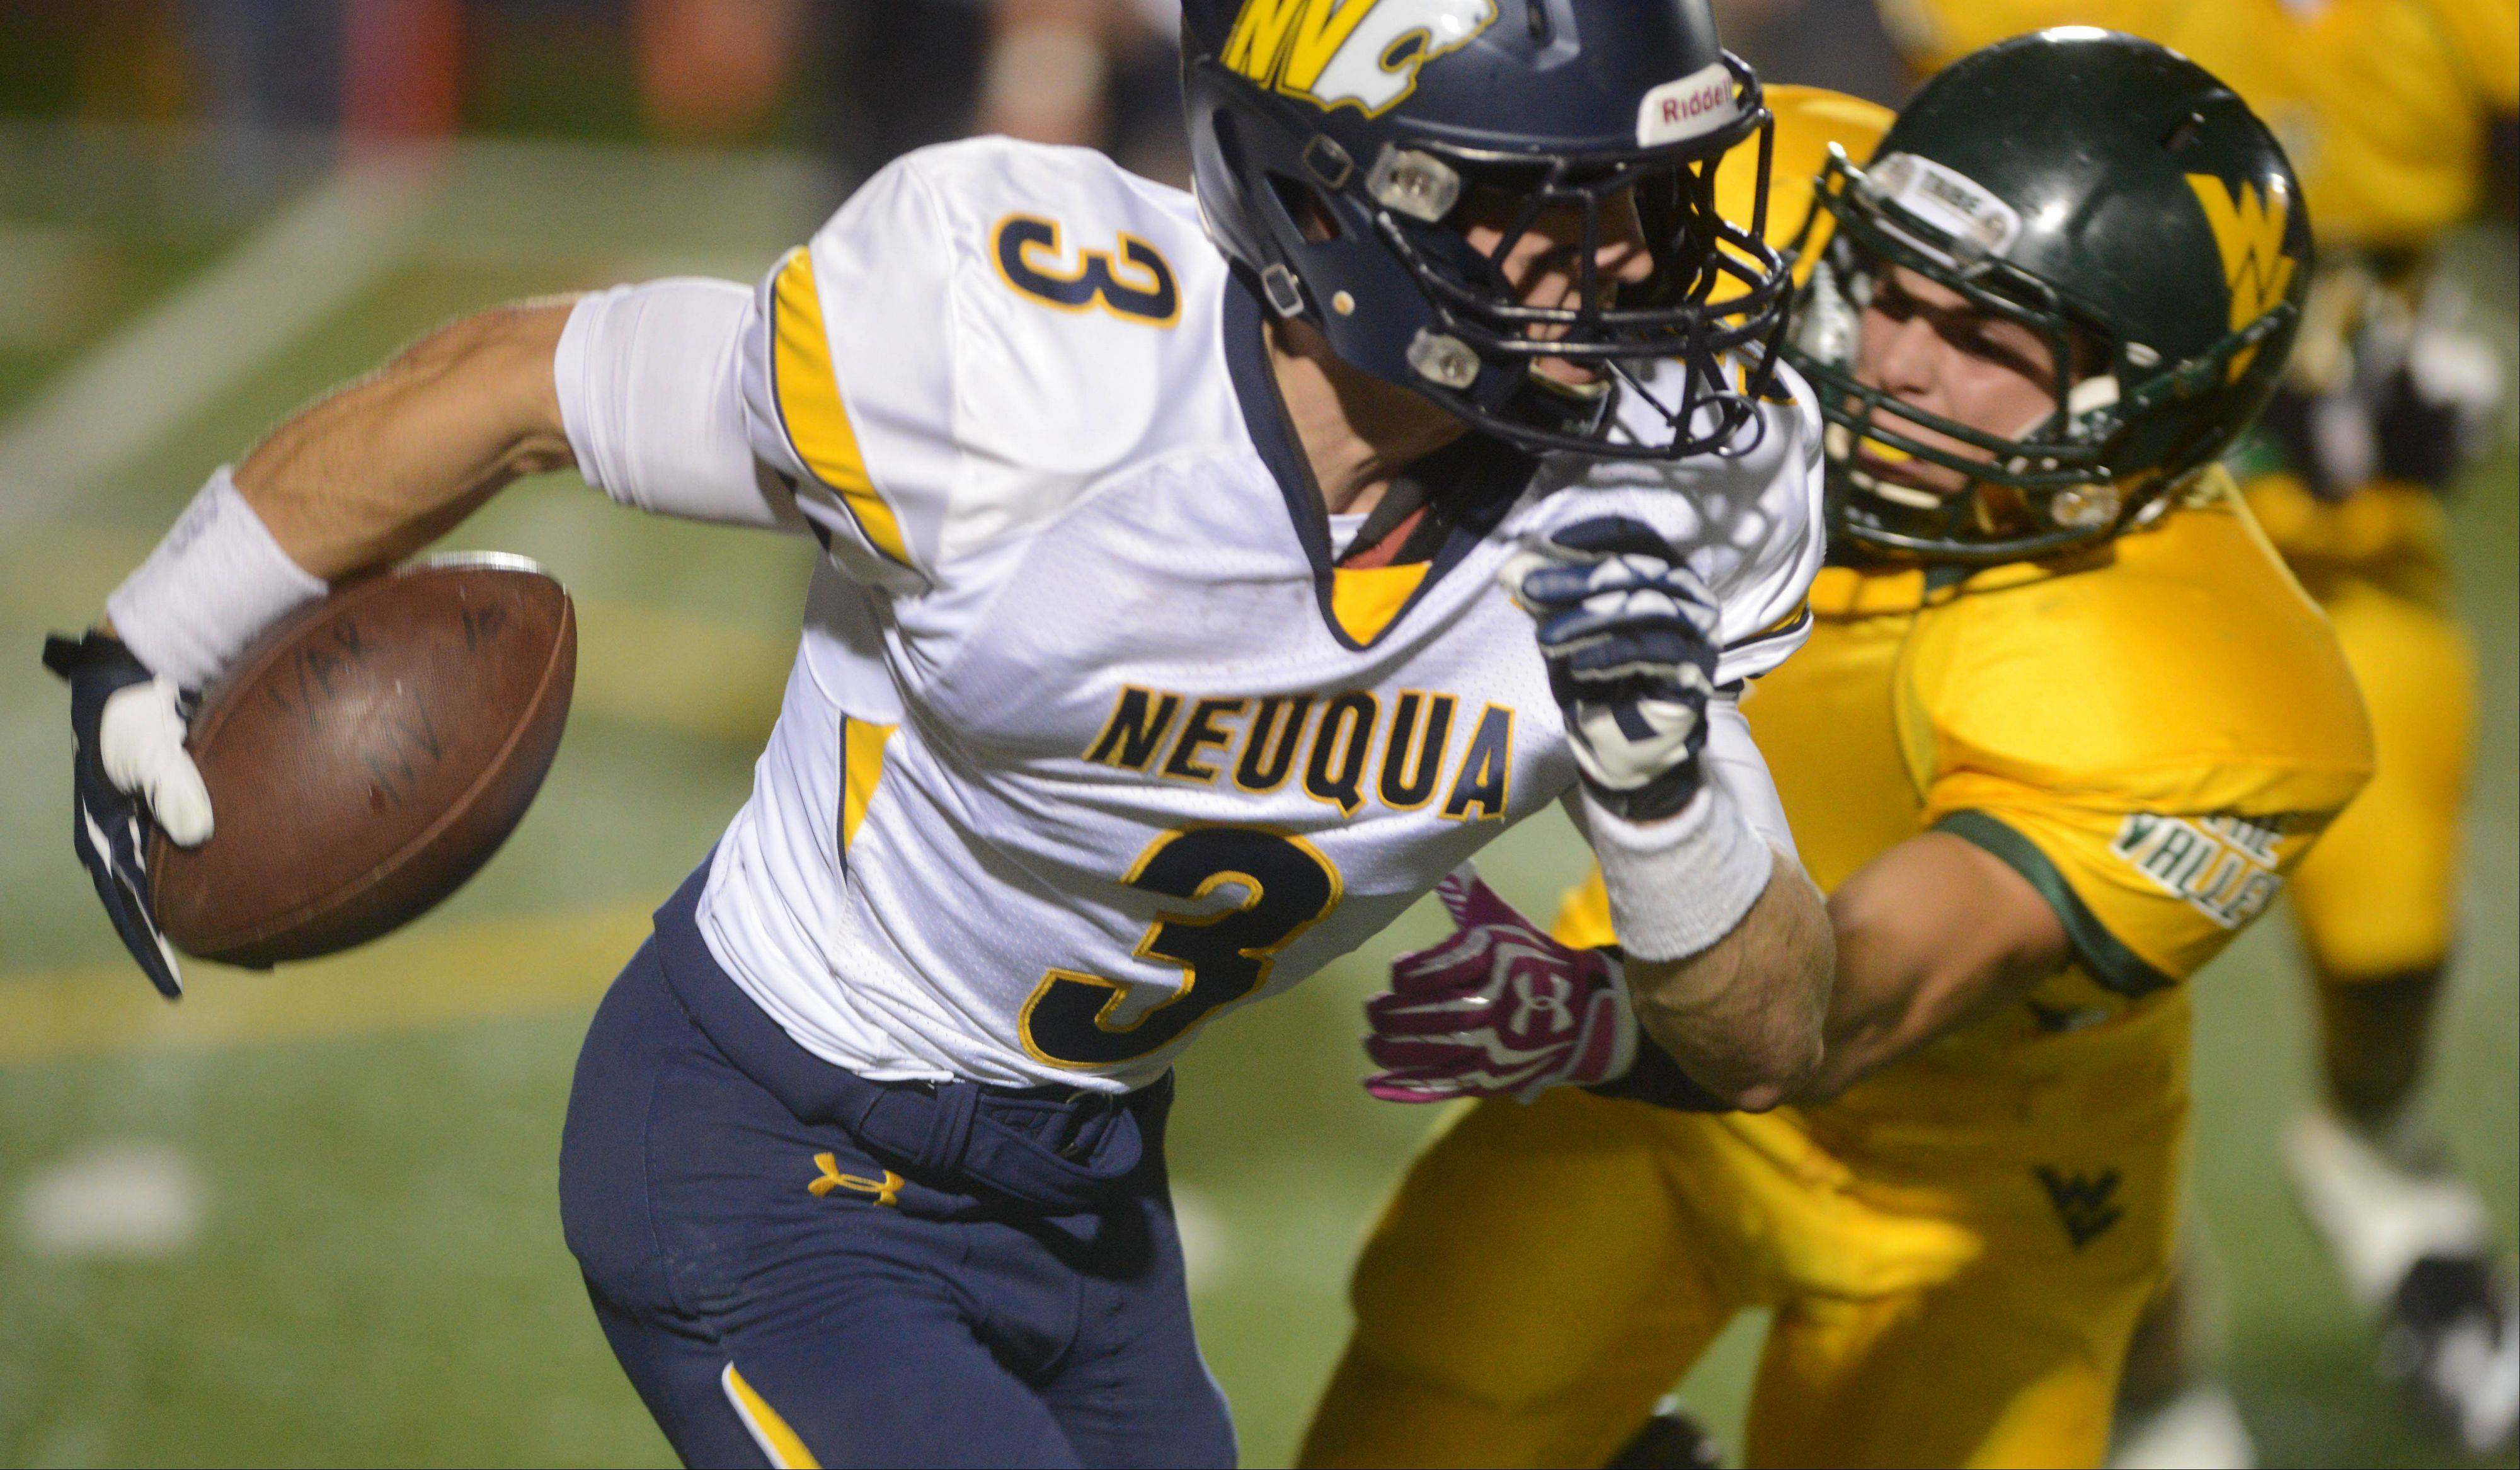 Mikey Dudek of Neuqua Valley runs the ball during the Wildcats' win over Waubonsie Valley at North Central College Friday.